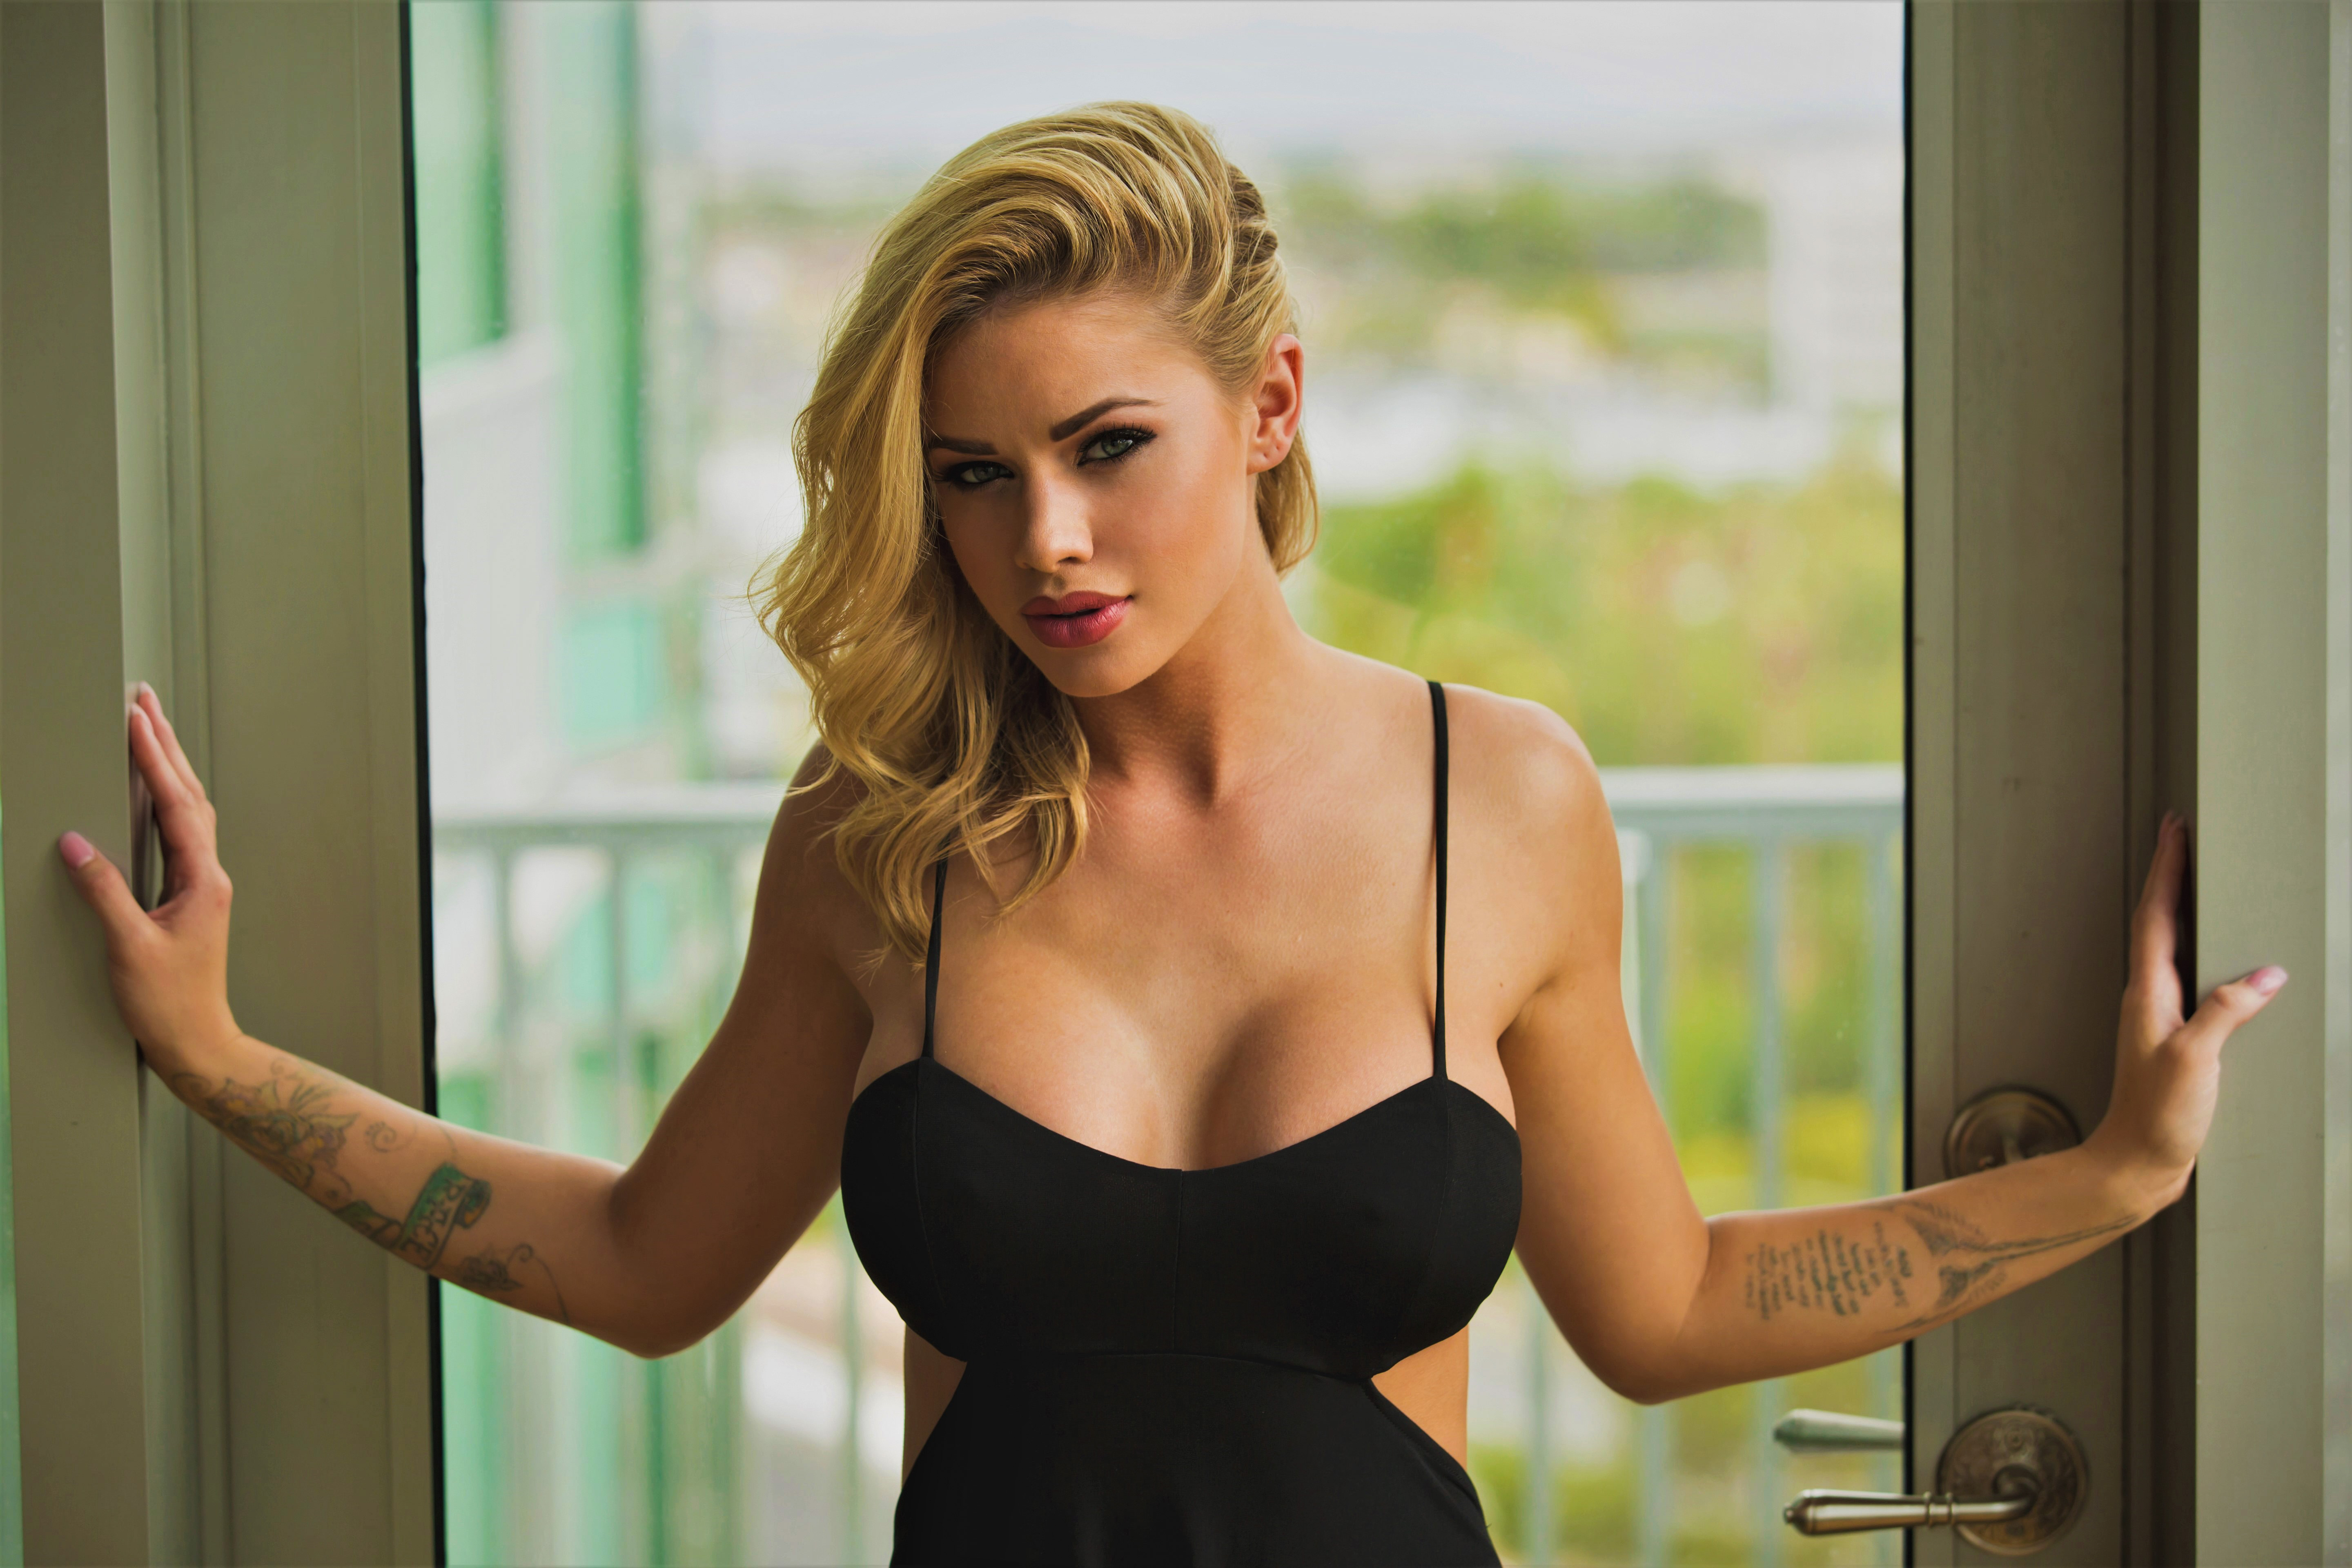 jessa rhodes video